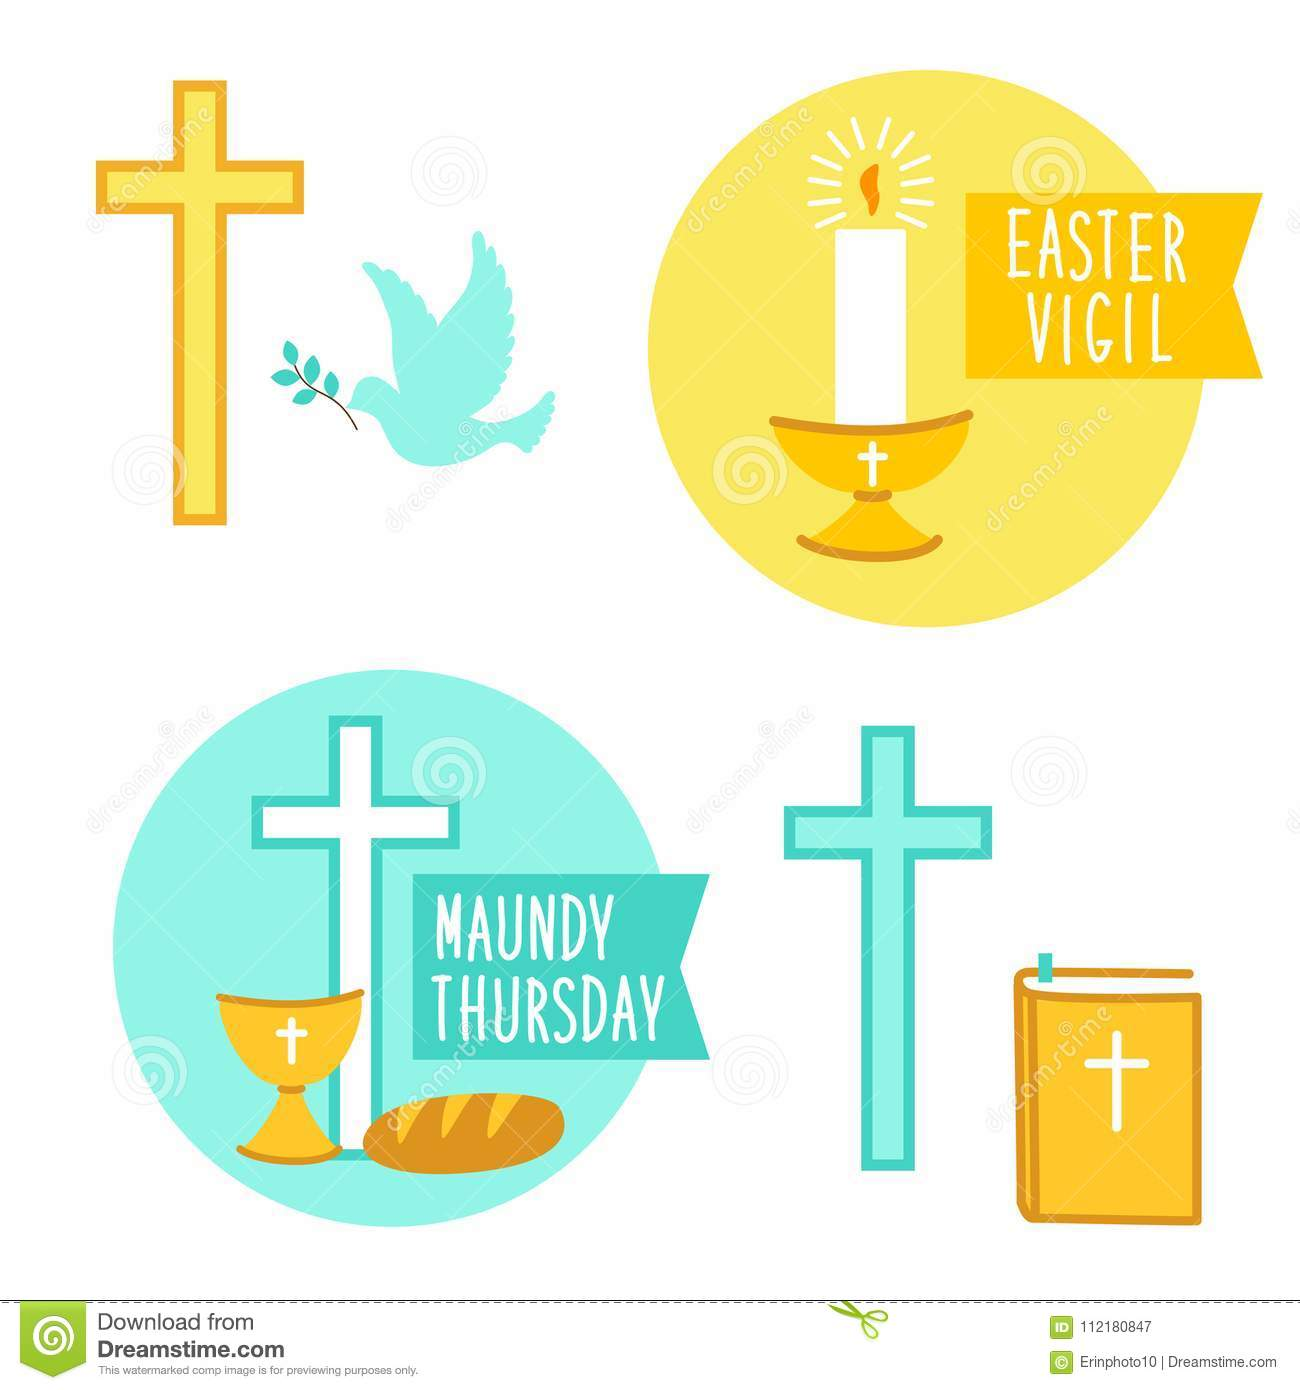 Easter Vigil Stock Illustrations.